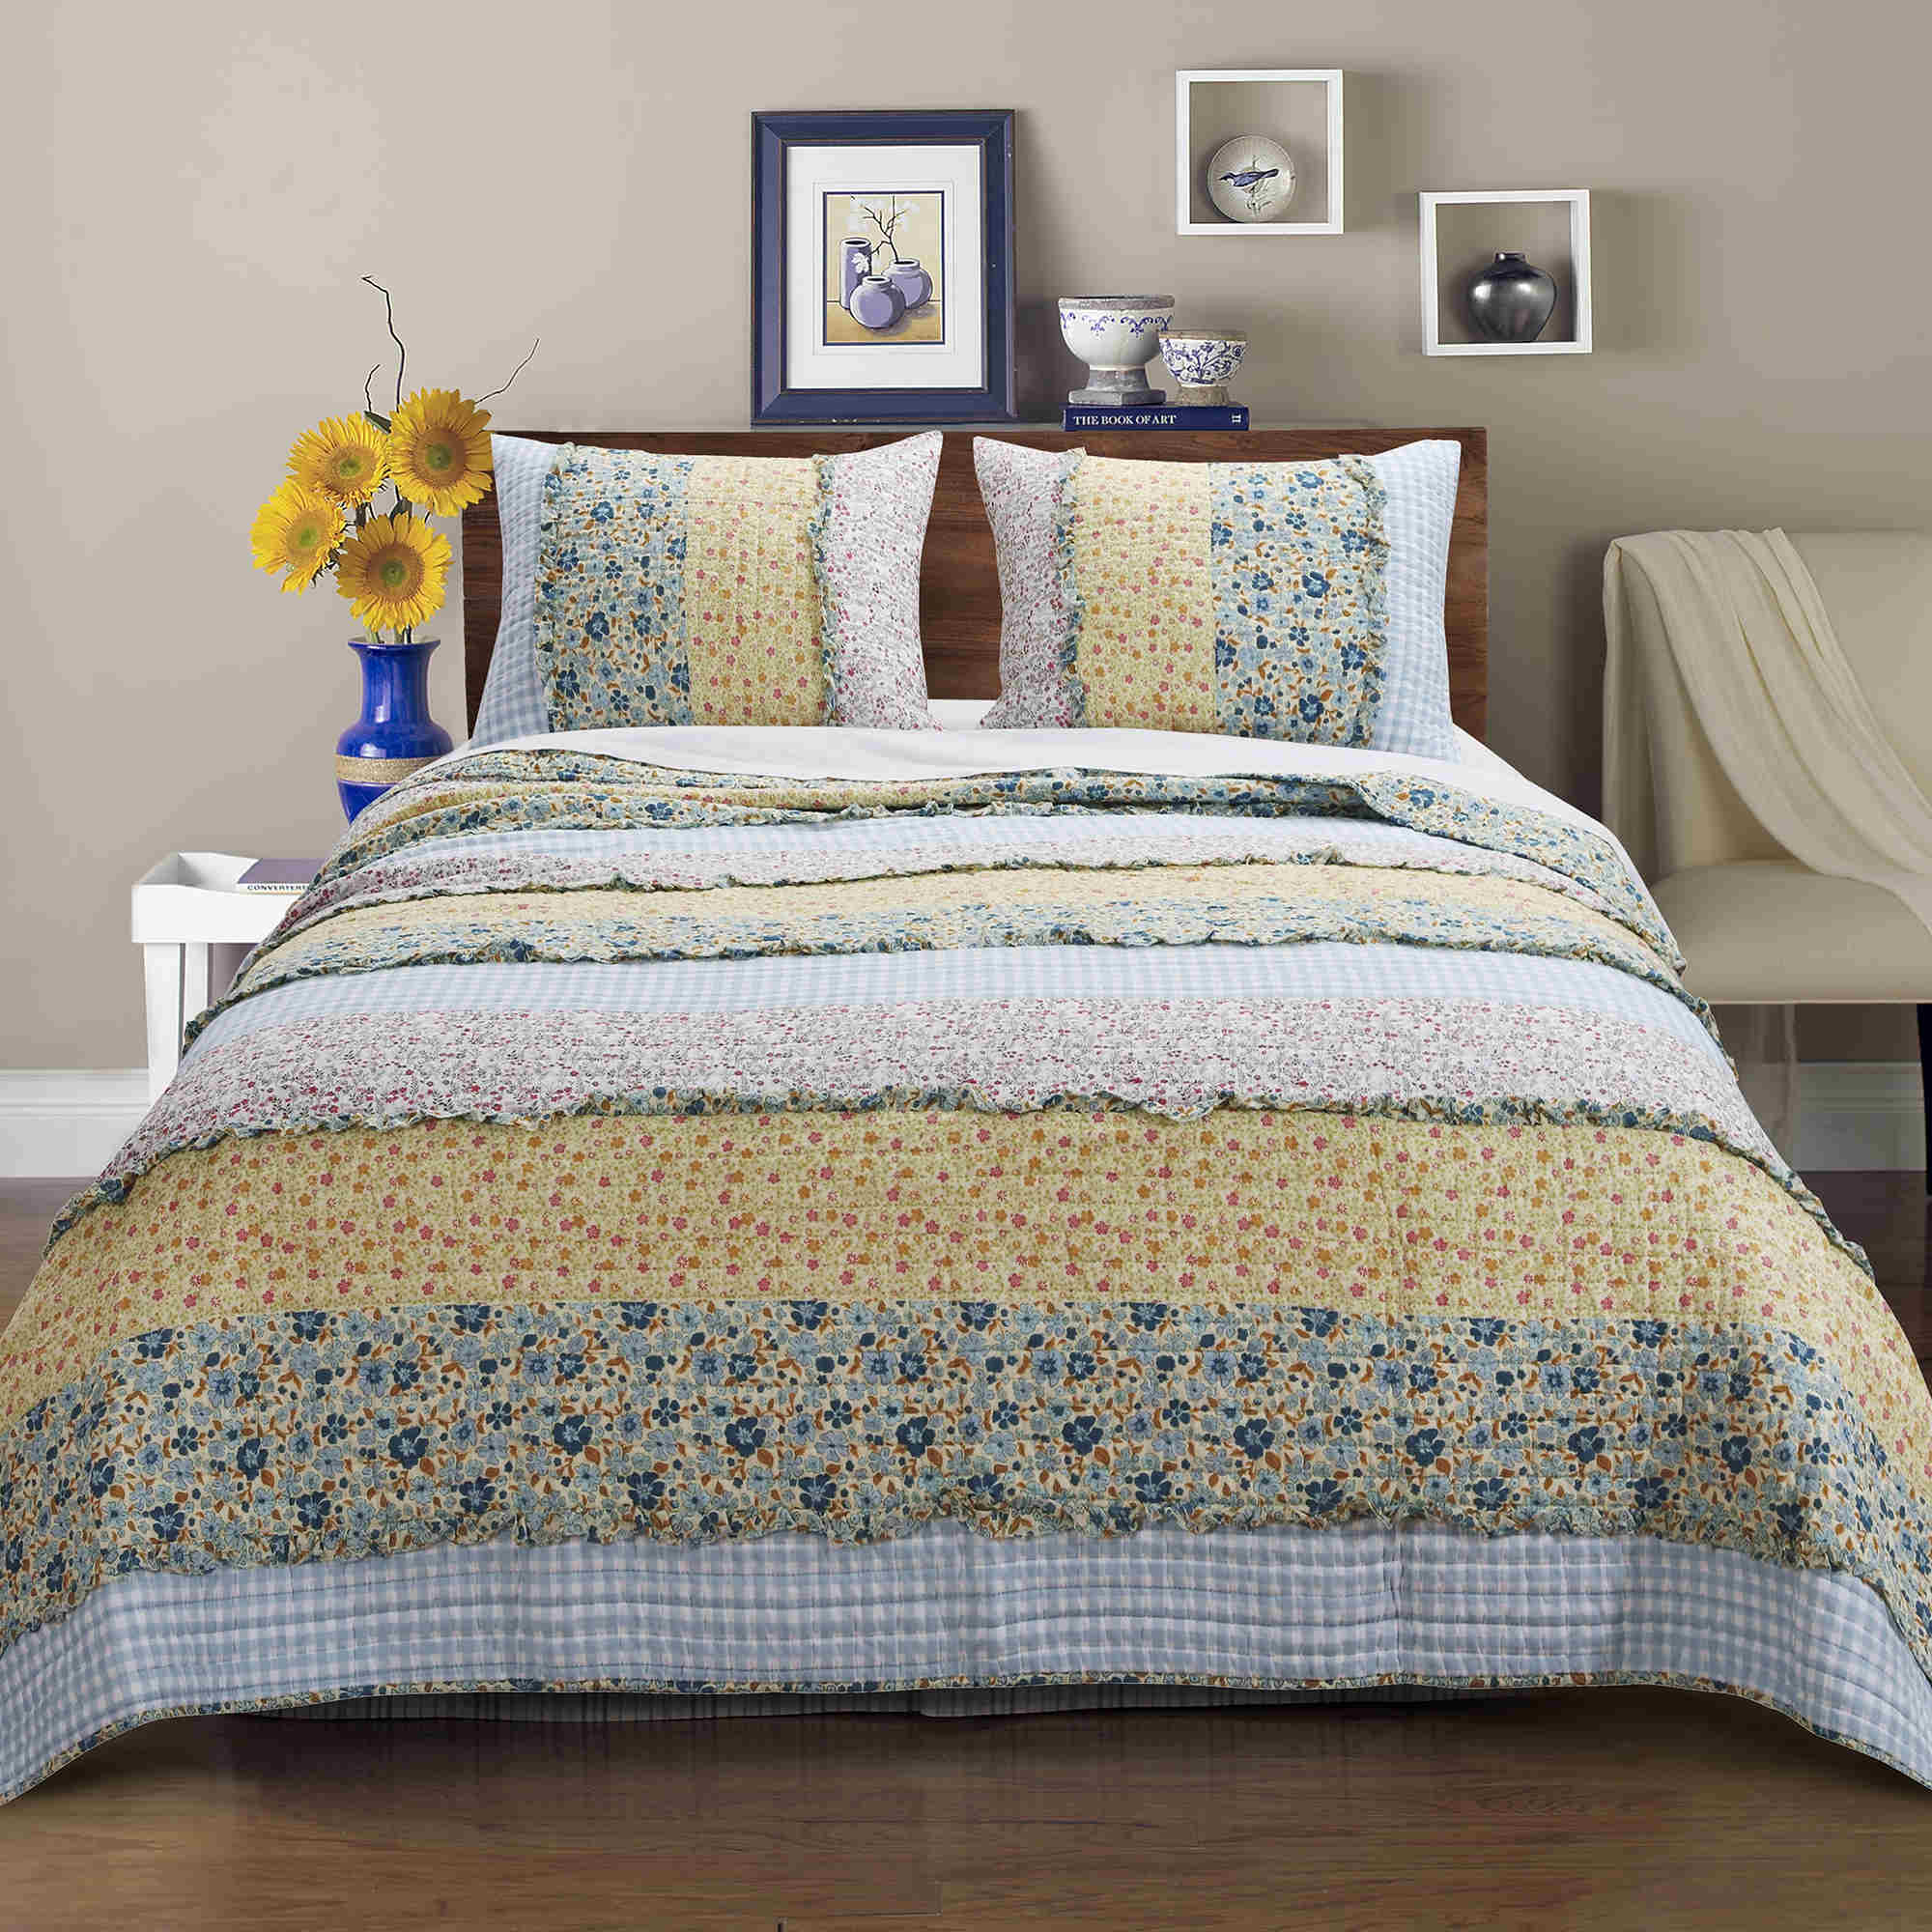 Ditsy Ruffle Multi Quilt Set, 3-piece King